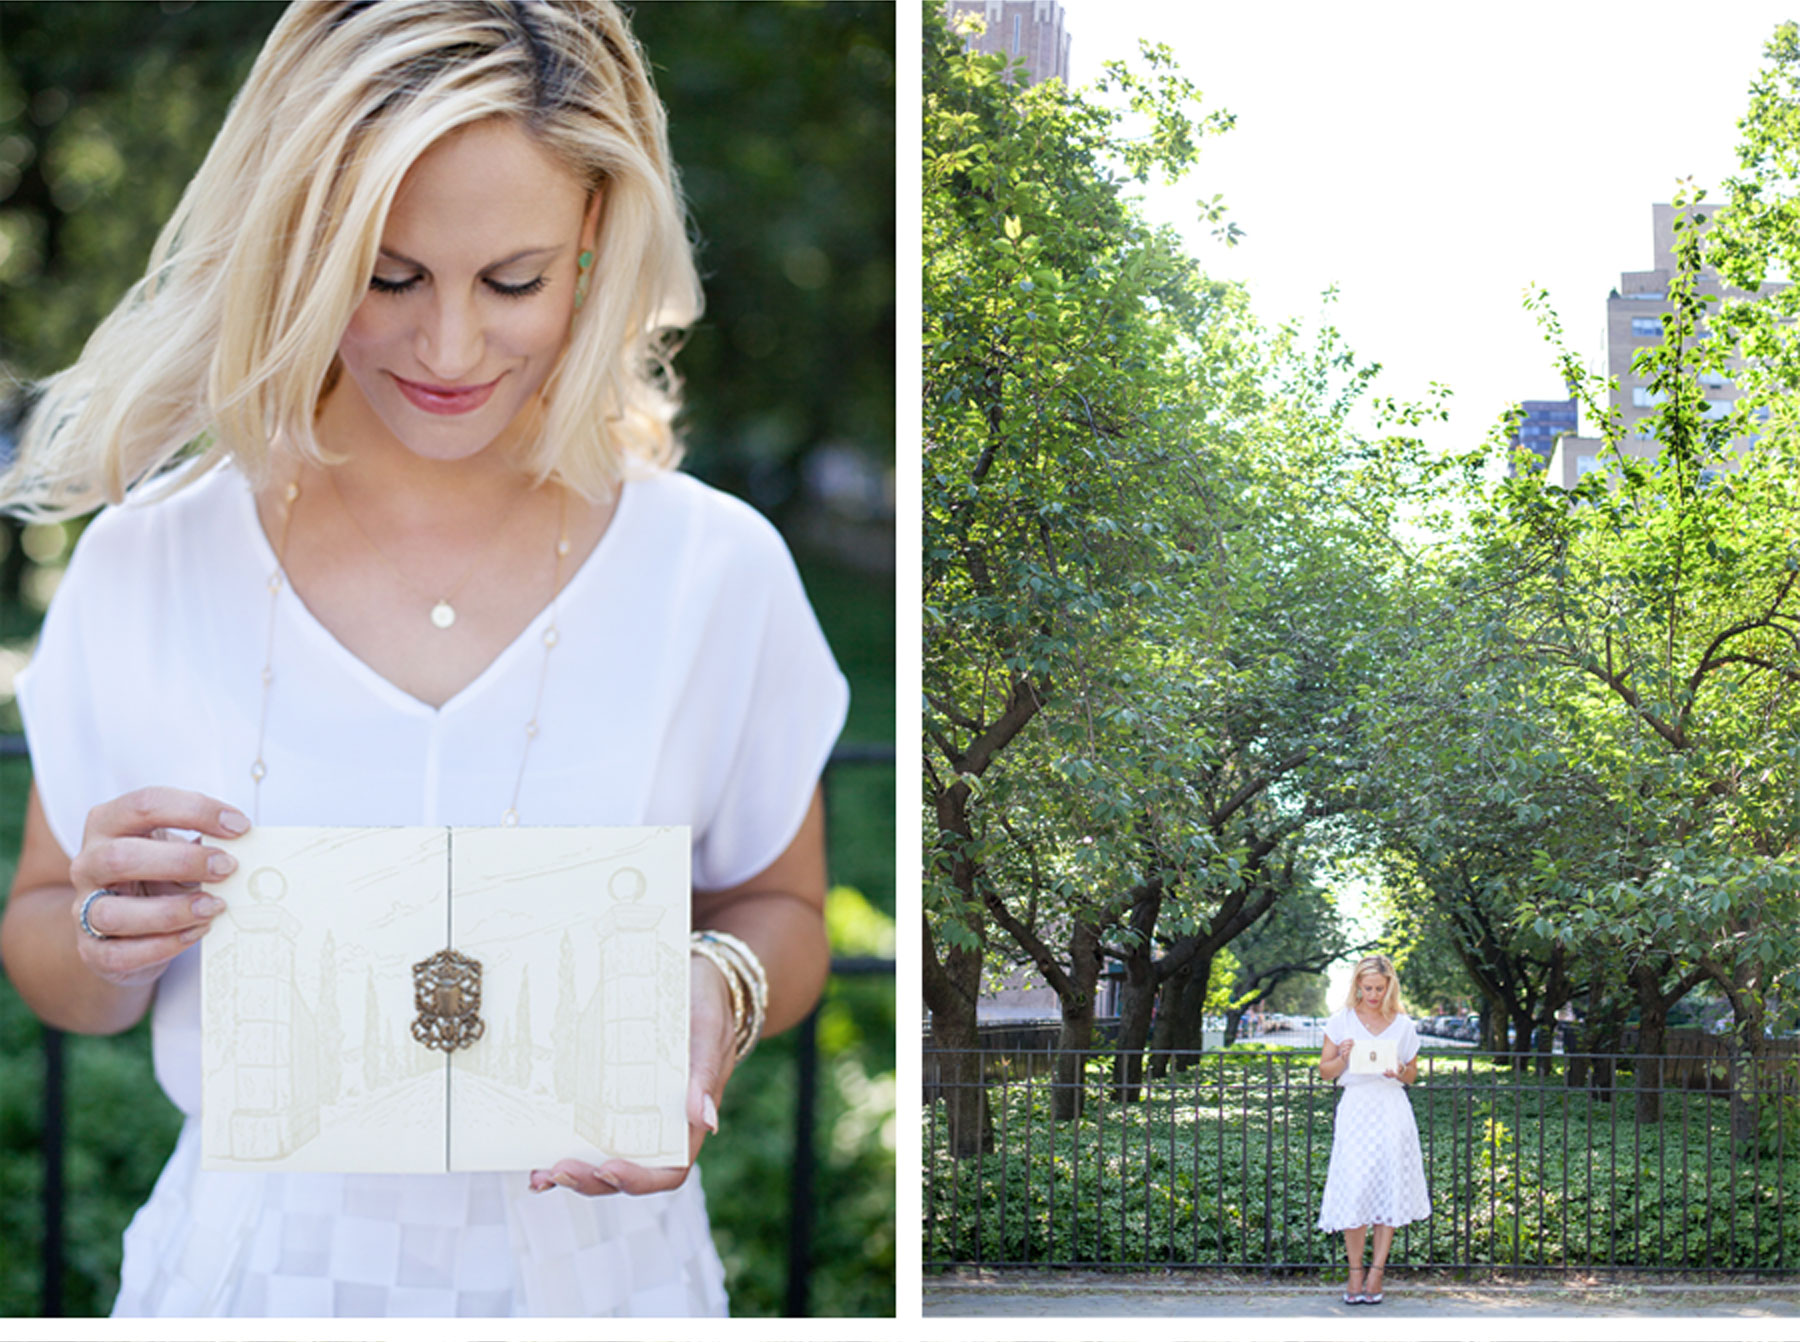 Ceci Johnson of Ceci New York - GARDEN STROLL: Ceci Johnson gets inspired by the greenery at Carl Schurz Park in Manhattan's Upper East Side. On Ceci Johnson: Dress: Milly. Necklace: Kate Spade and The Morgan Collection.  Bangles: Sequin. Earrings: Kate Spade. Rings: SRW. Shoes: Cole Haan. Photo: Maya Myers